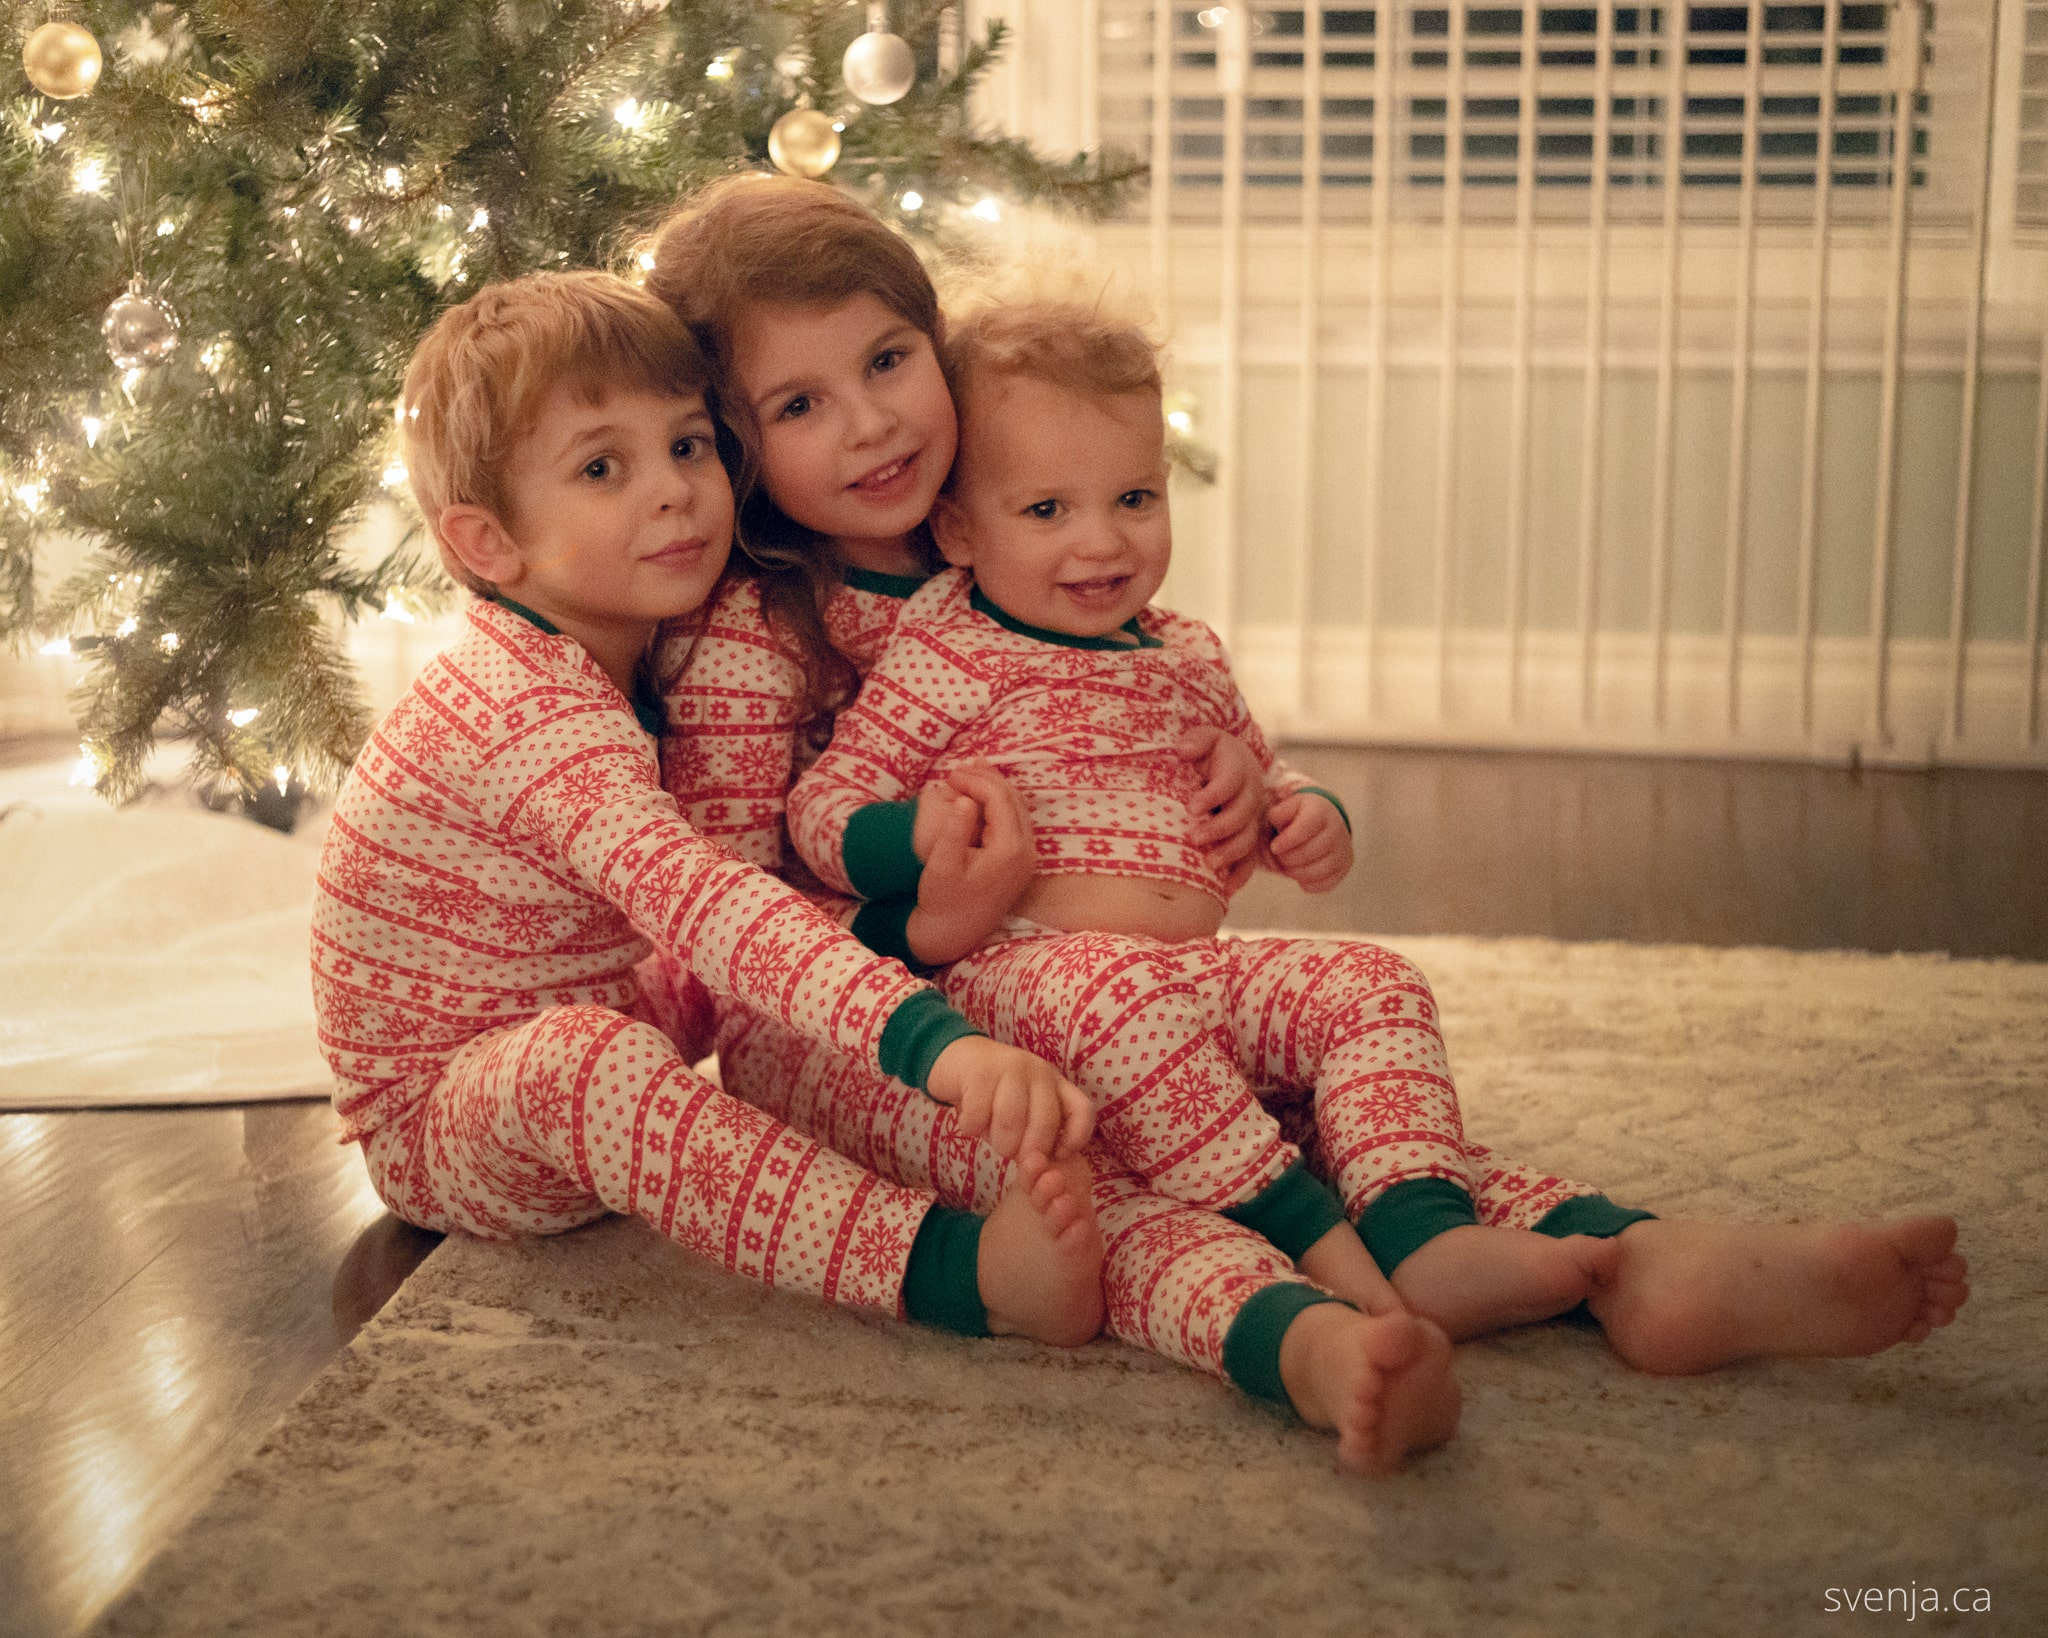 3 children in matching pajamas sit in front of a Christmas tree